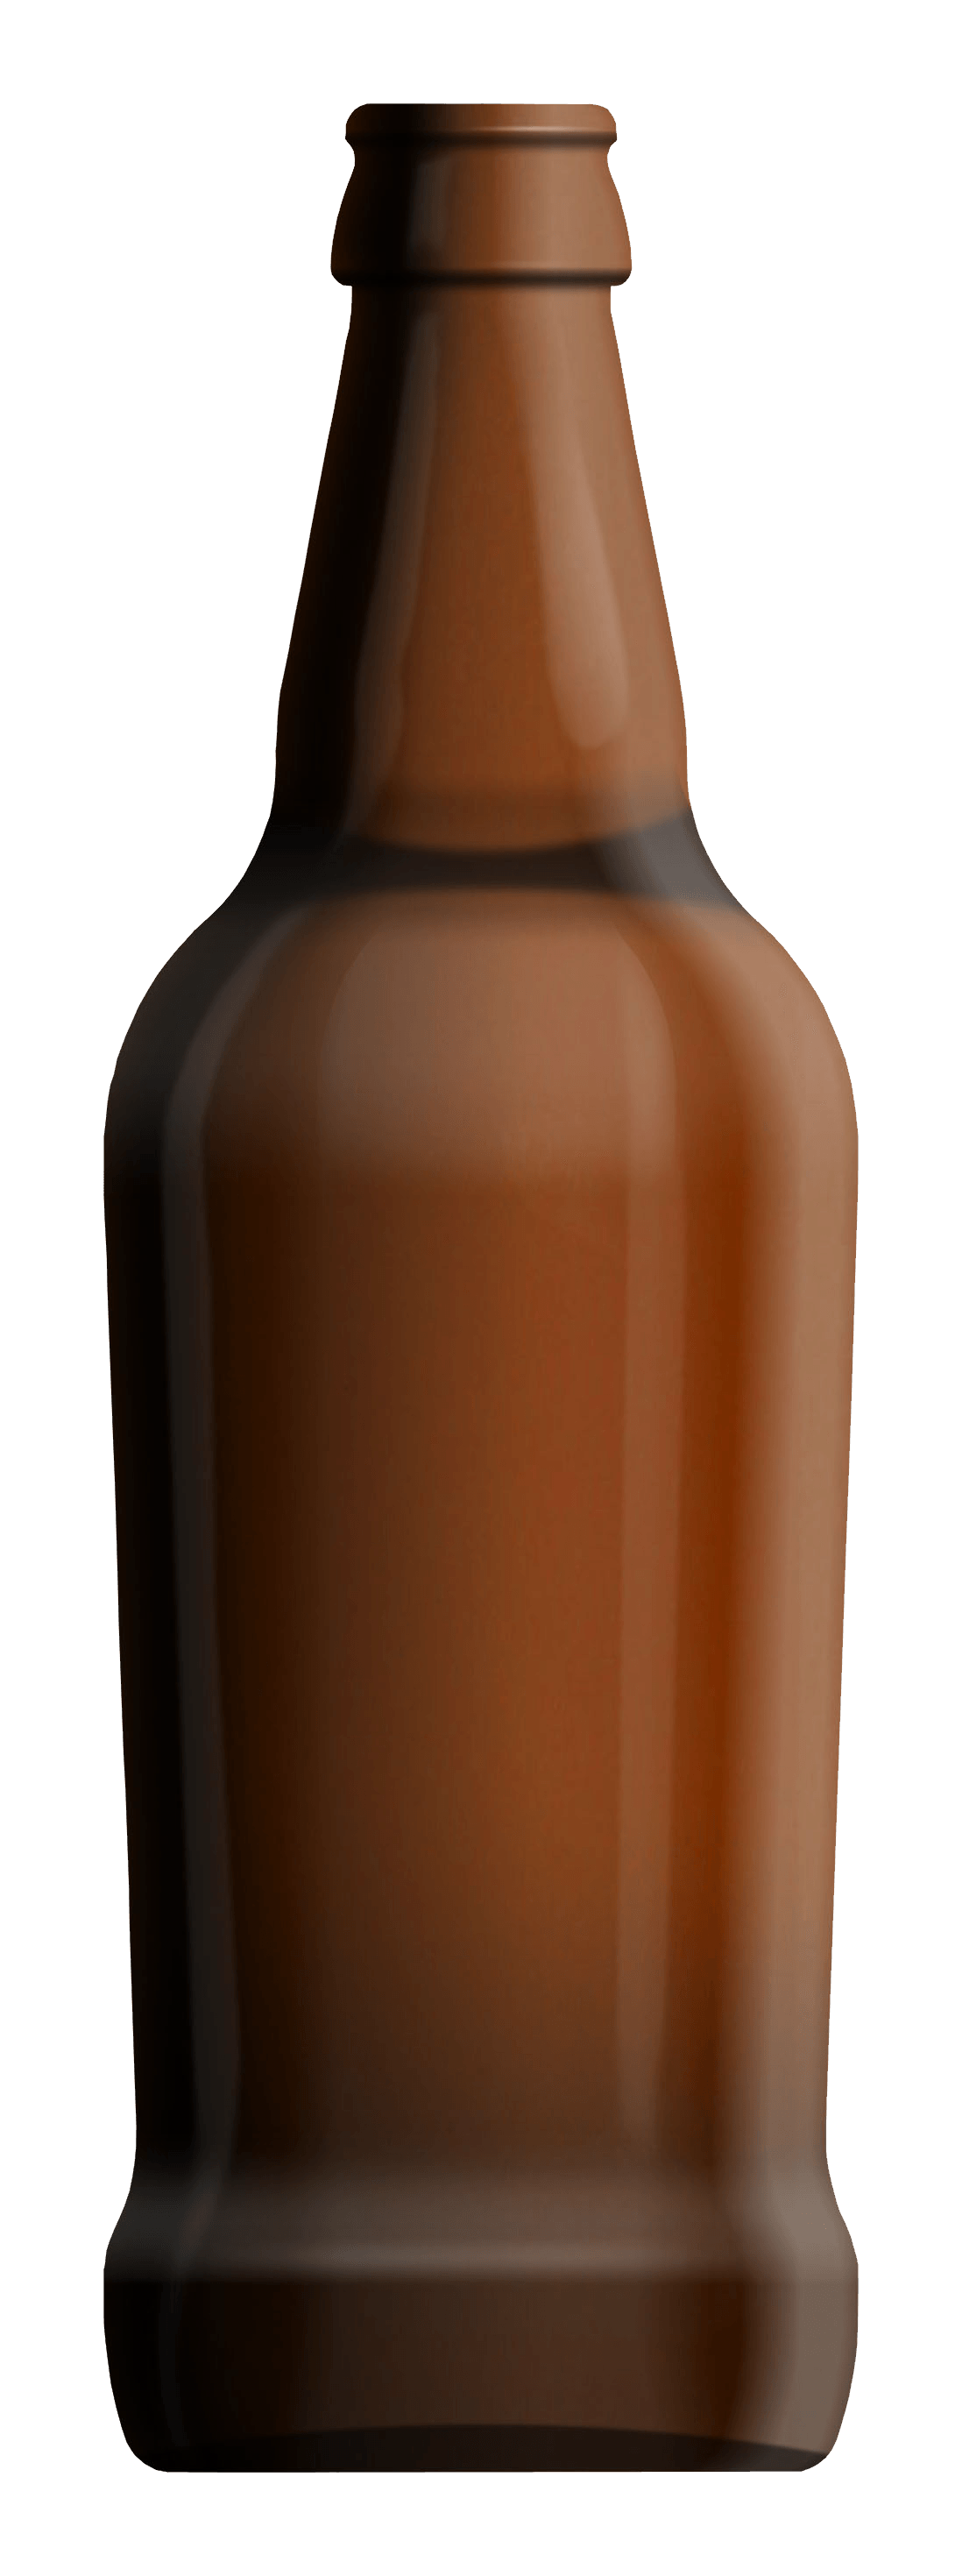 Download Beer Bottle Png Image HQ PNG Image in different